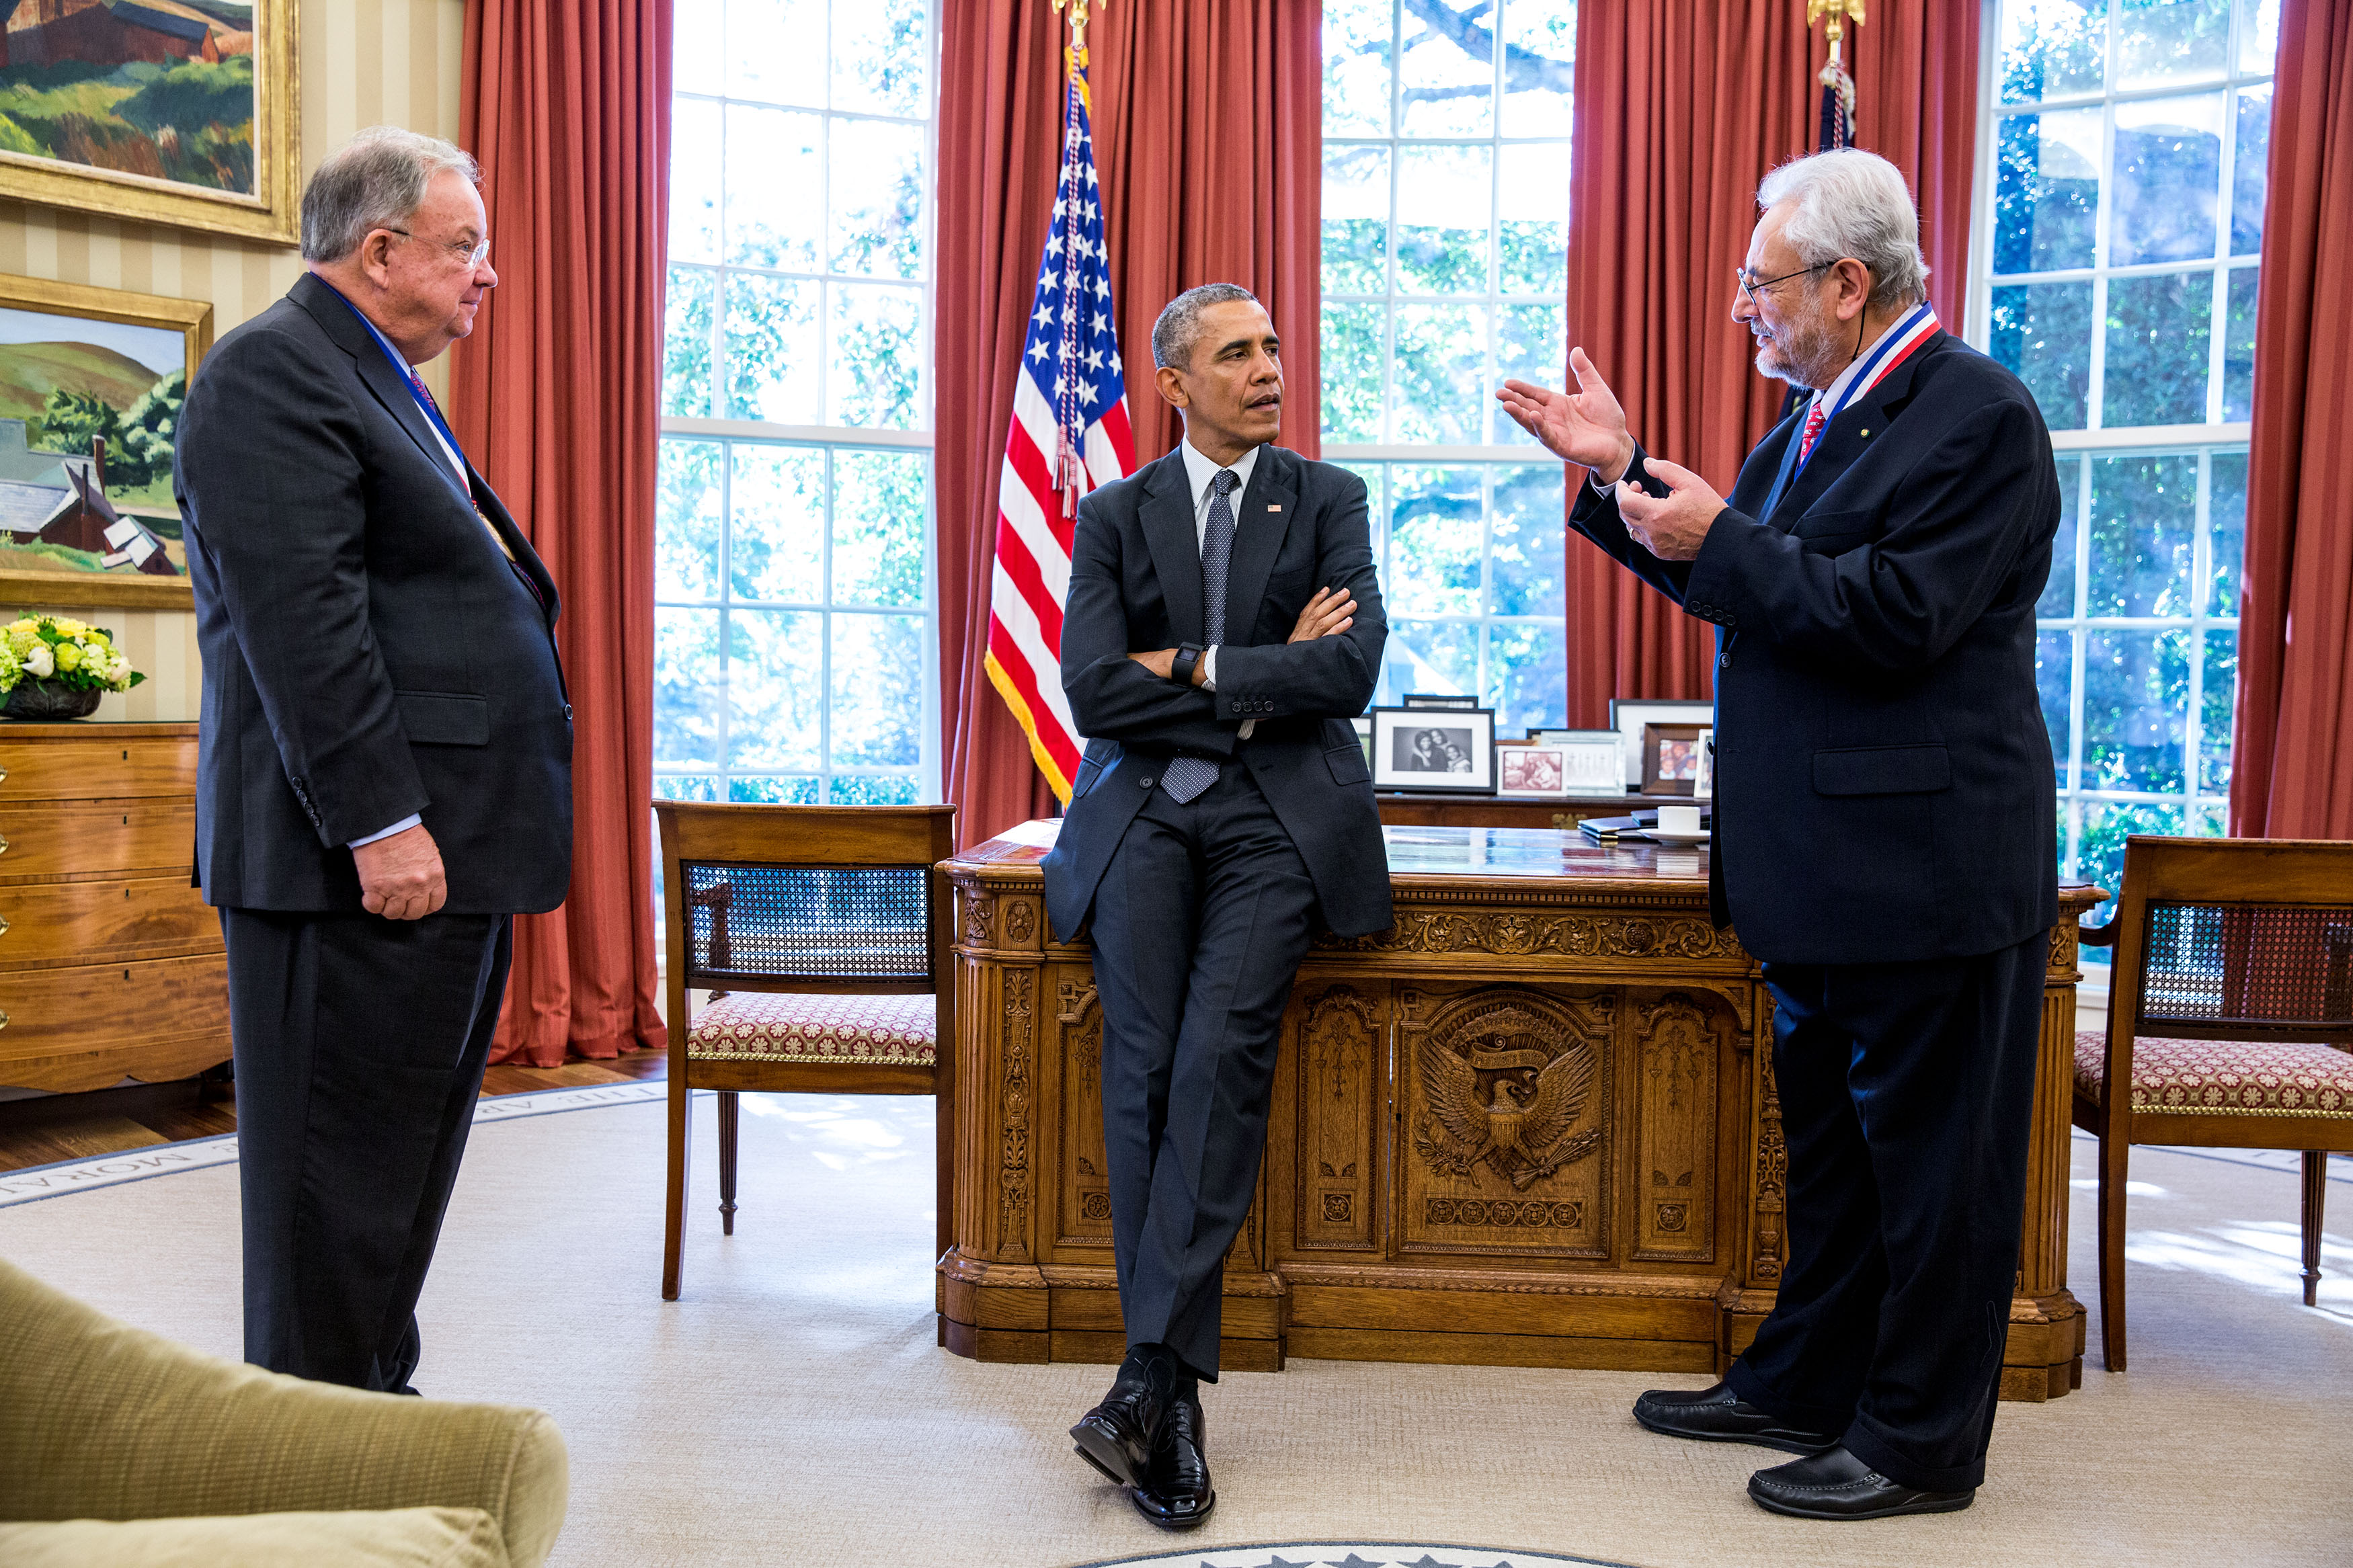 President Barack Obama greets 2014 Enrico Fermi Award recipients Charles Shank, left, and Claudio Pellegrini in the Oval Office, Oct. 20, 2015. (Official White House Photo by Pete Souza)